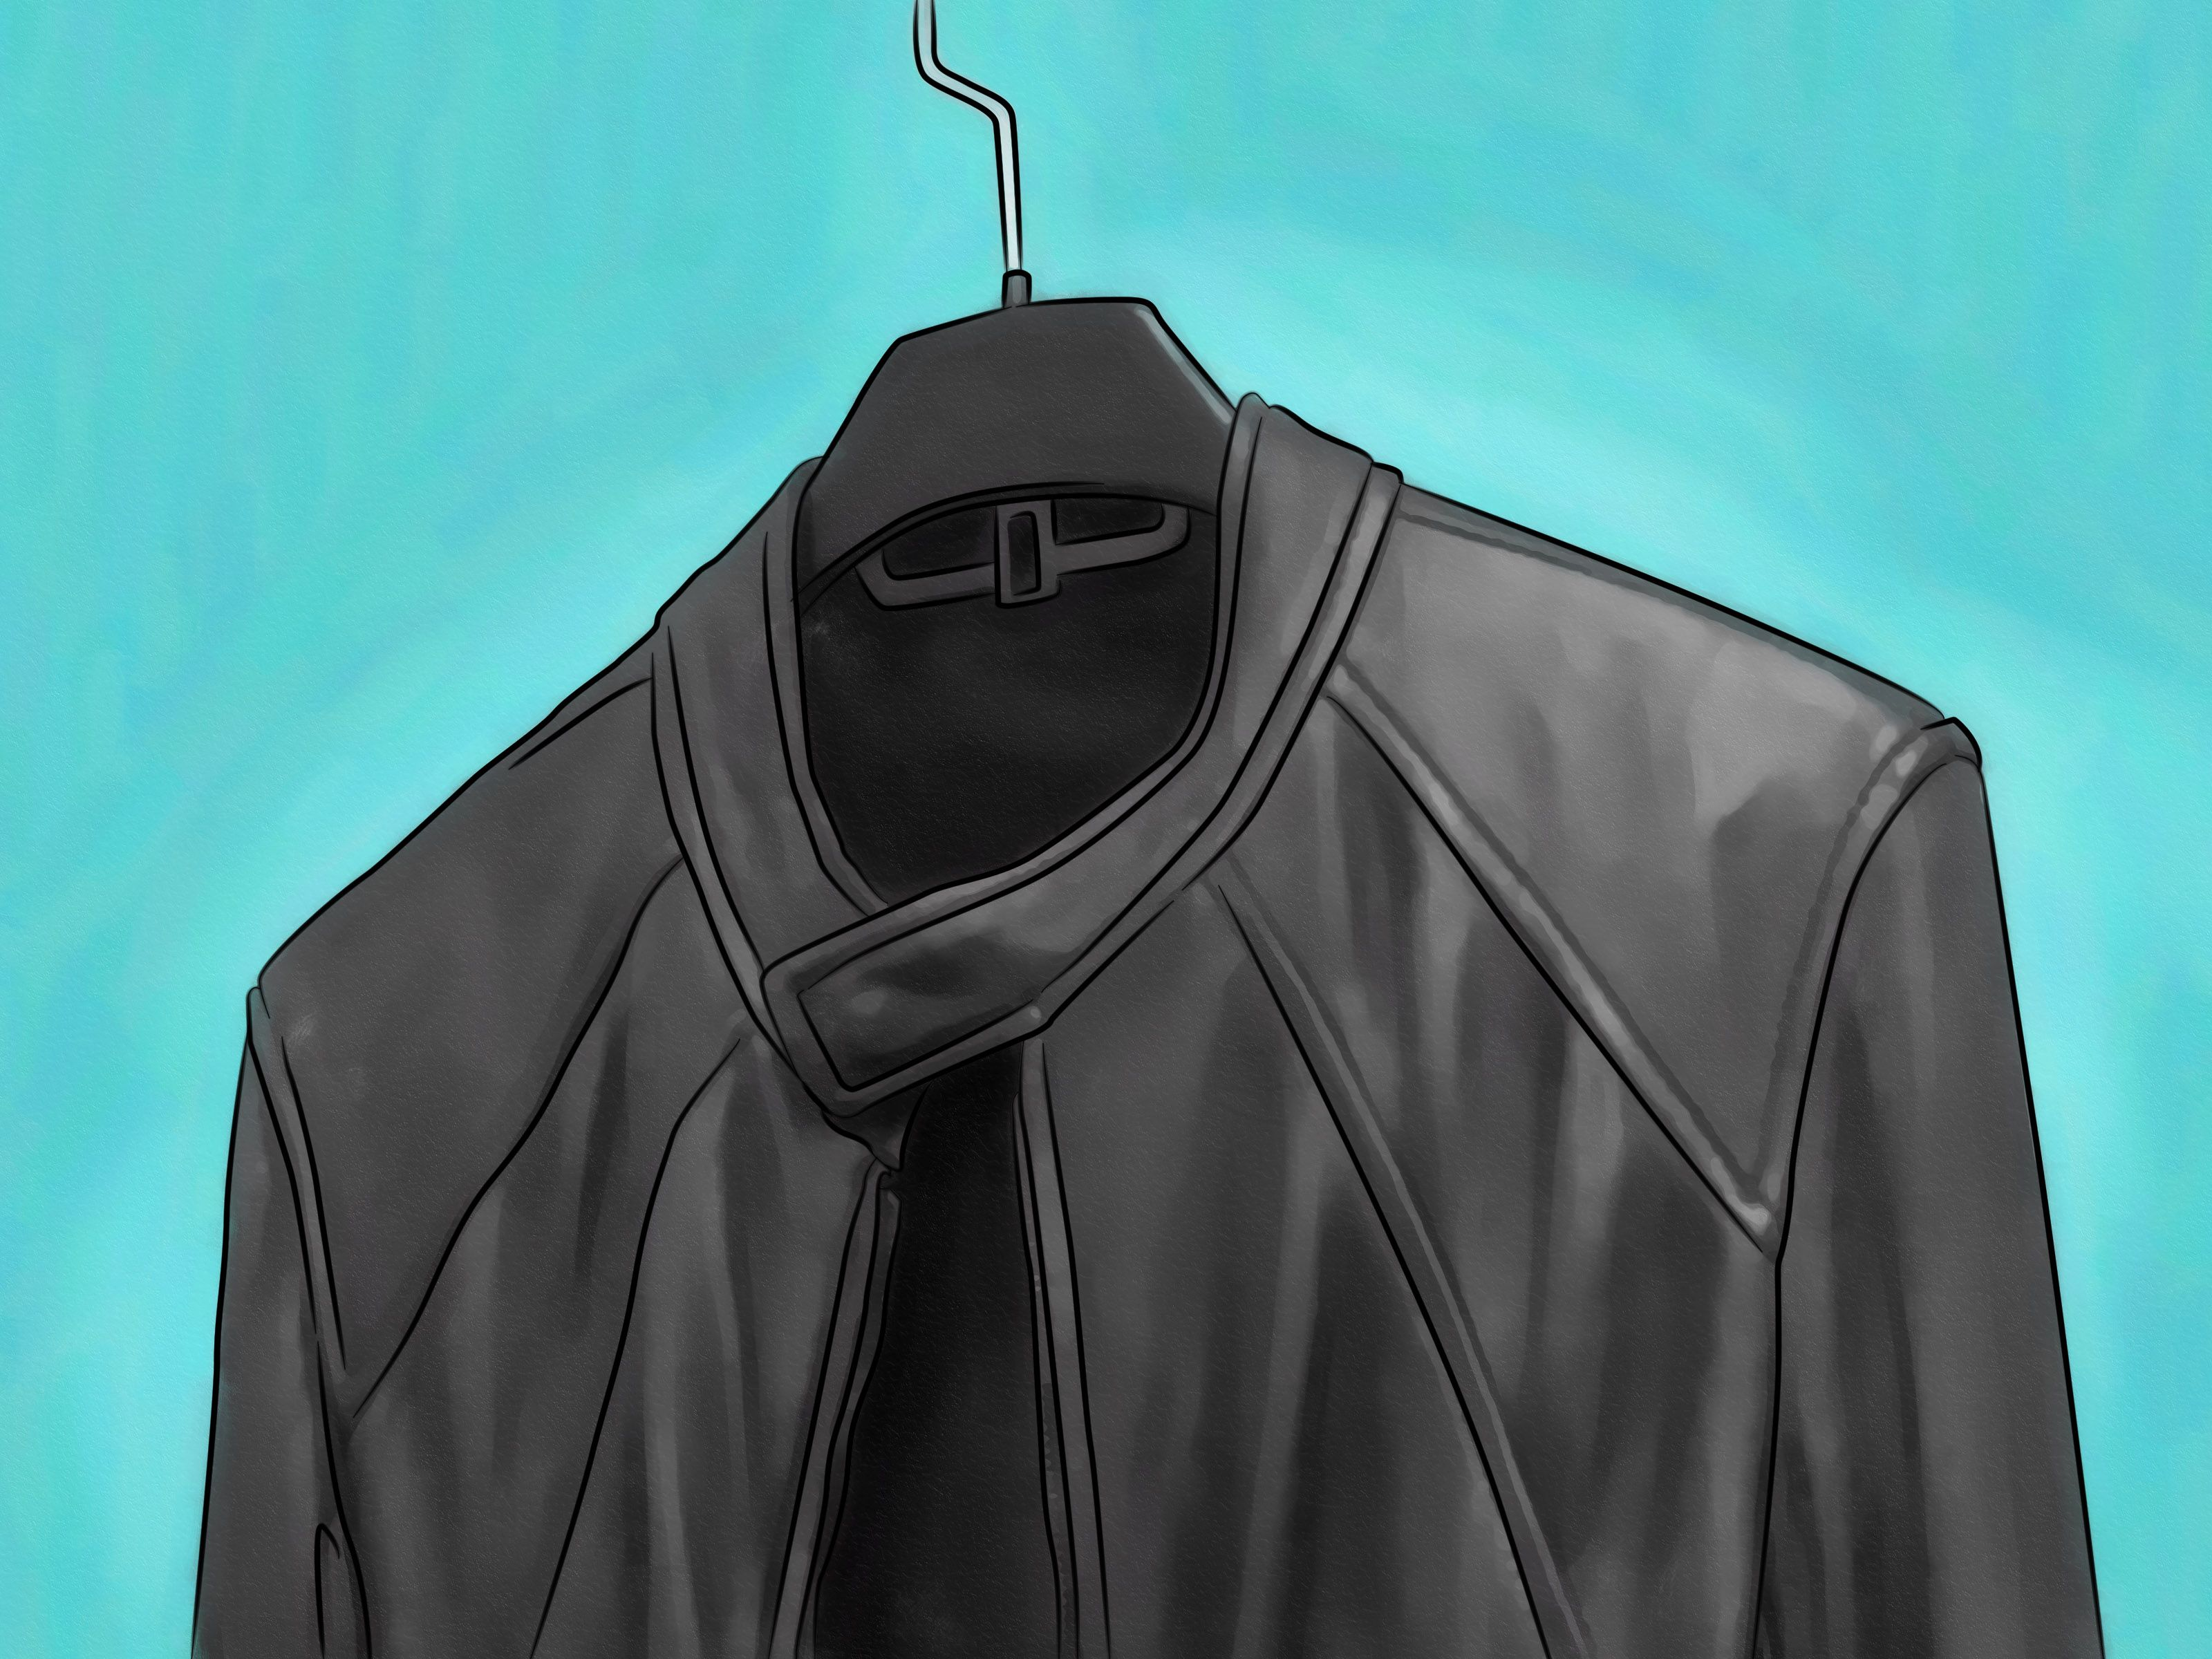 Clean a leather jacket leather jacket diy leather